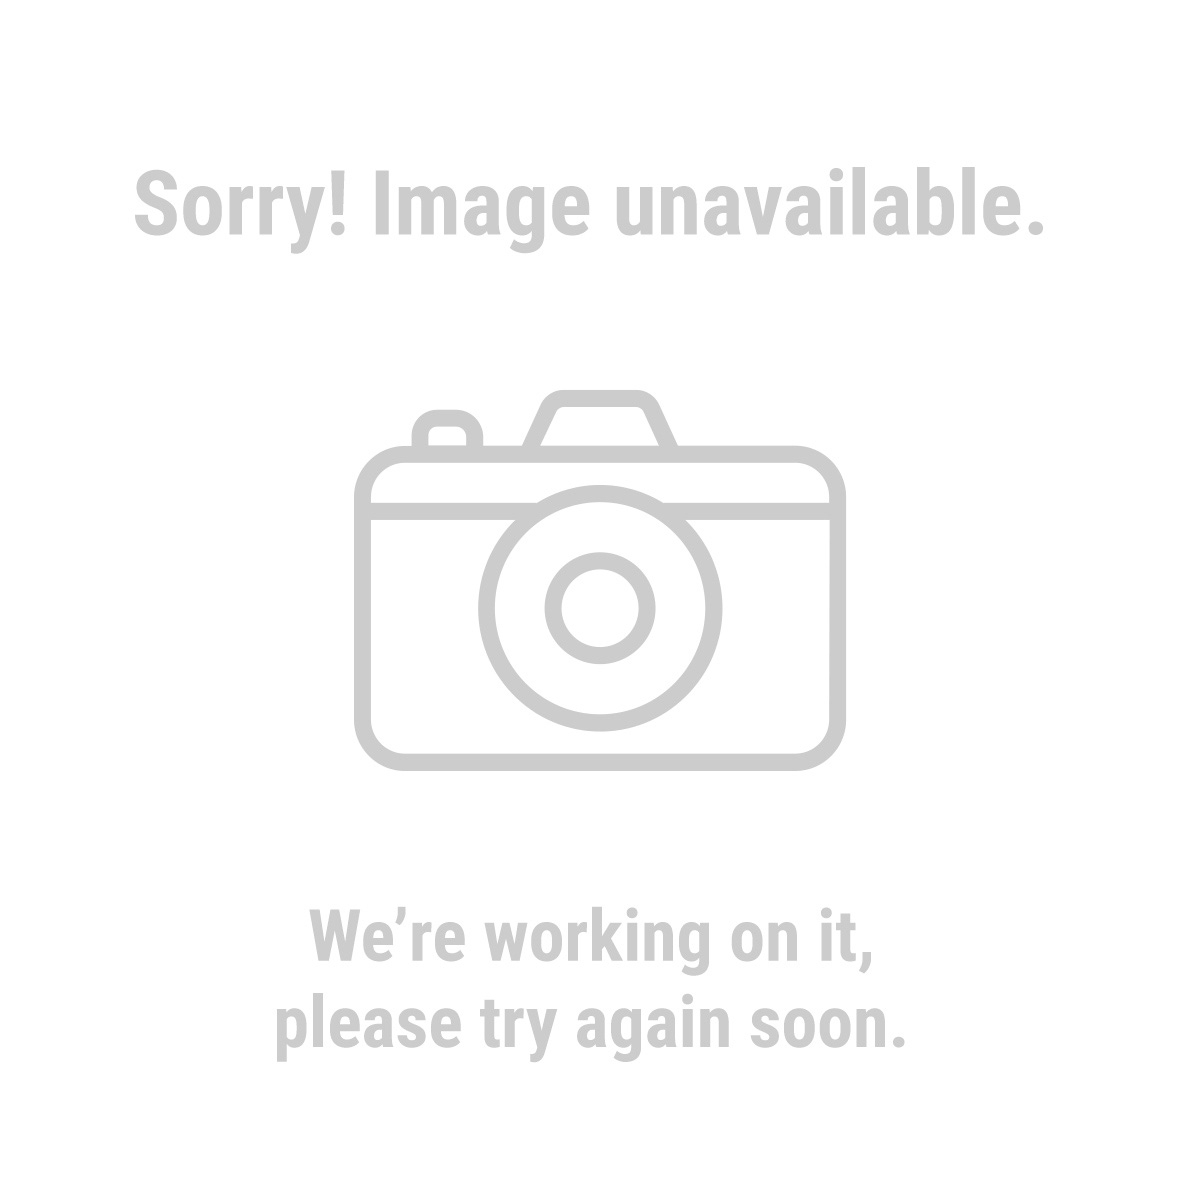 Haul Master Automotive 69650 Truck Bed Extender